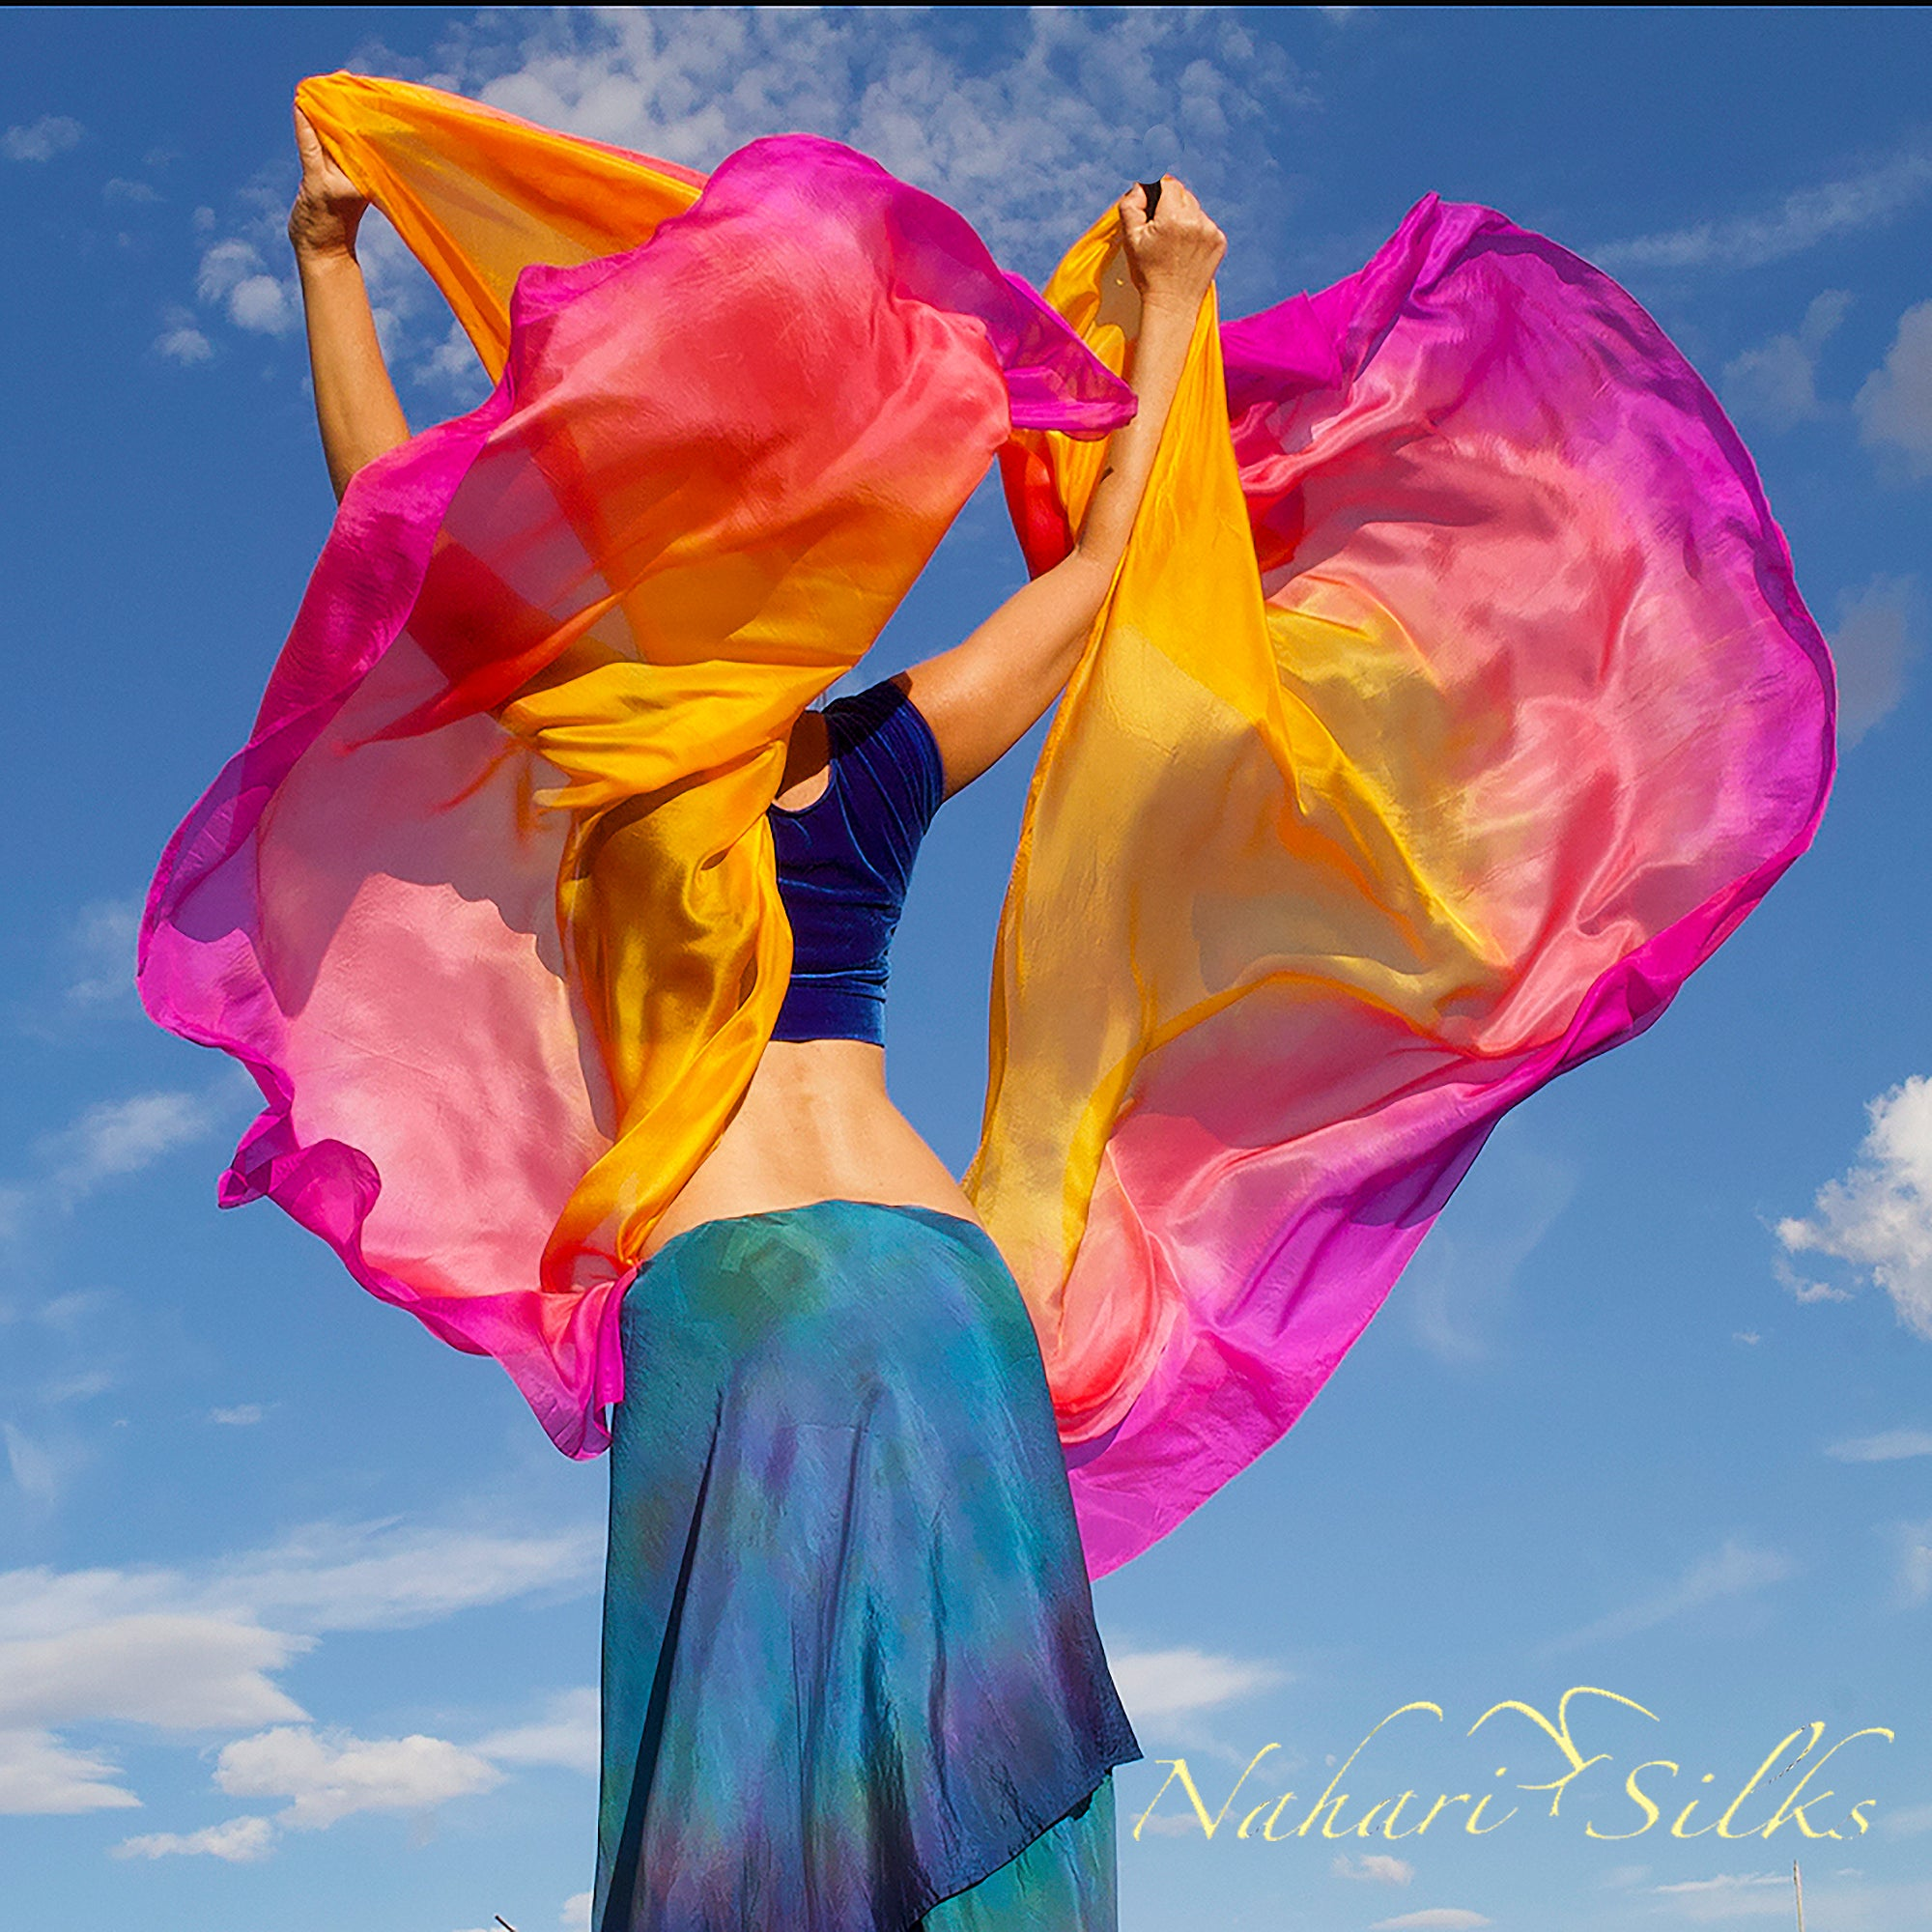 Nahari Silks Half Circle Belly Dance Veils Set Half Circle Matching Veils Sunrise